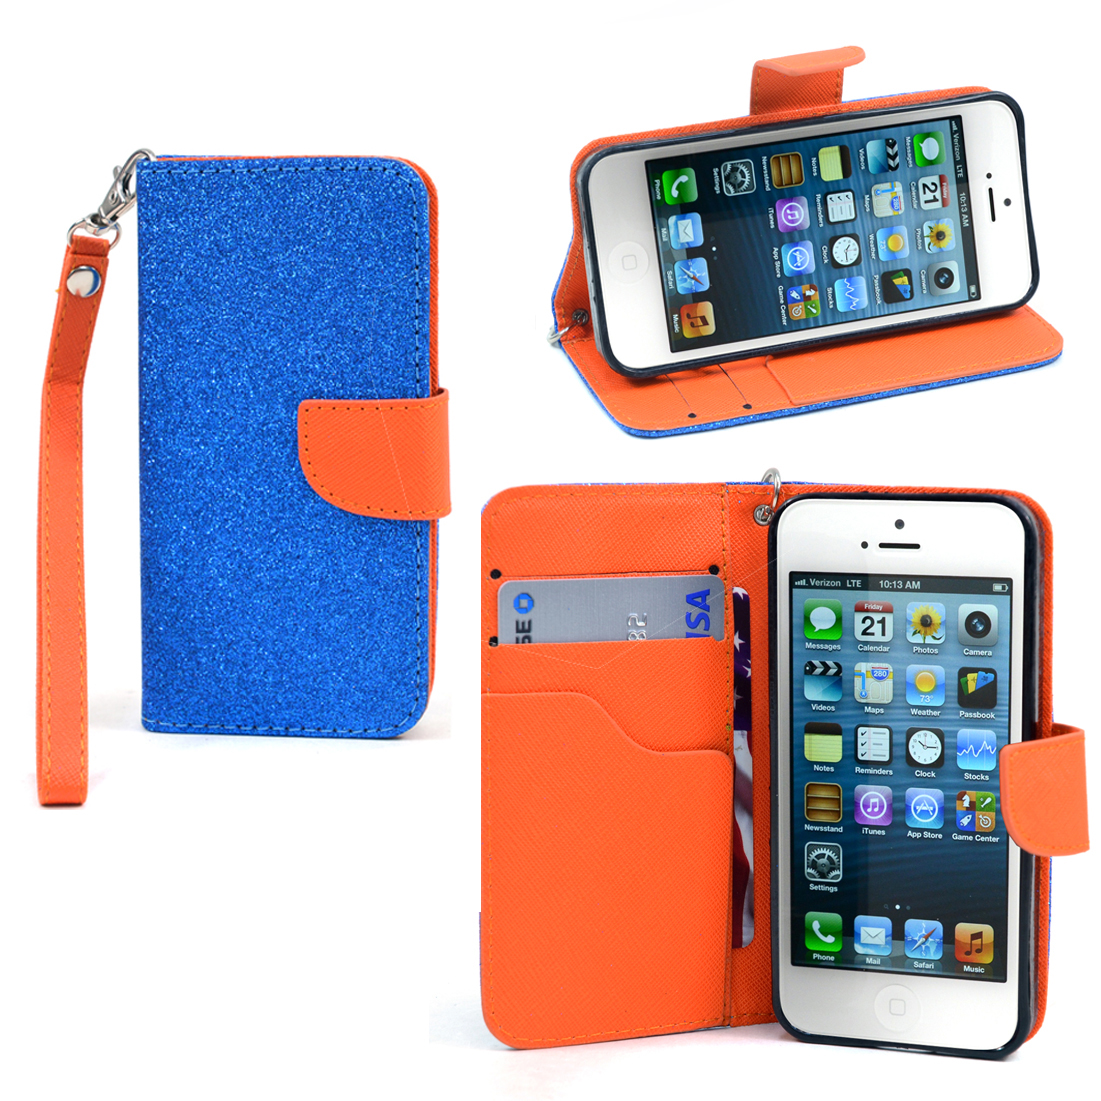 Dasein® Metallic Glitter Cell Phone Case With Wrist Strap for iPhone 5